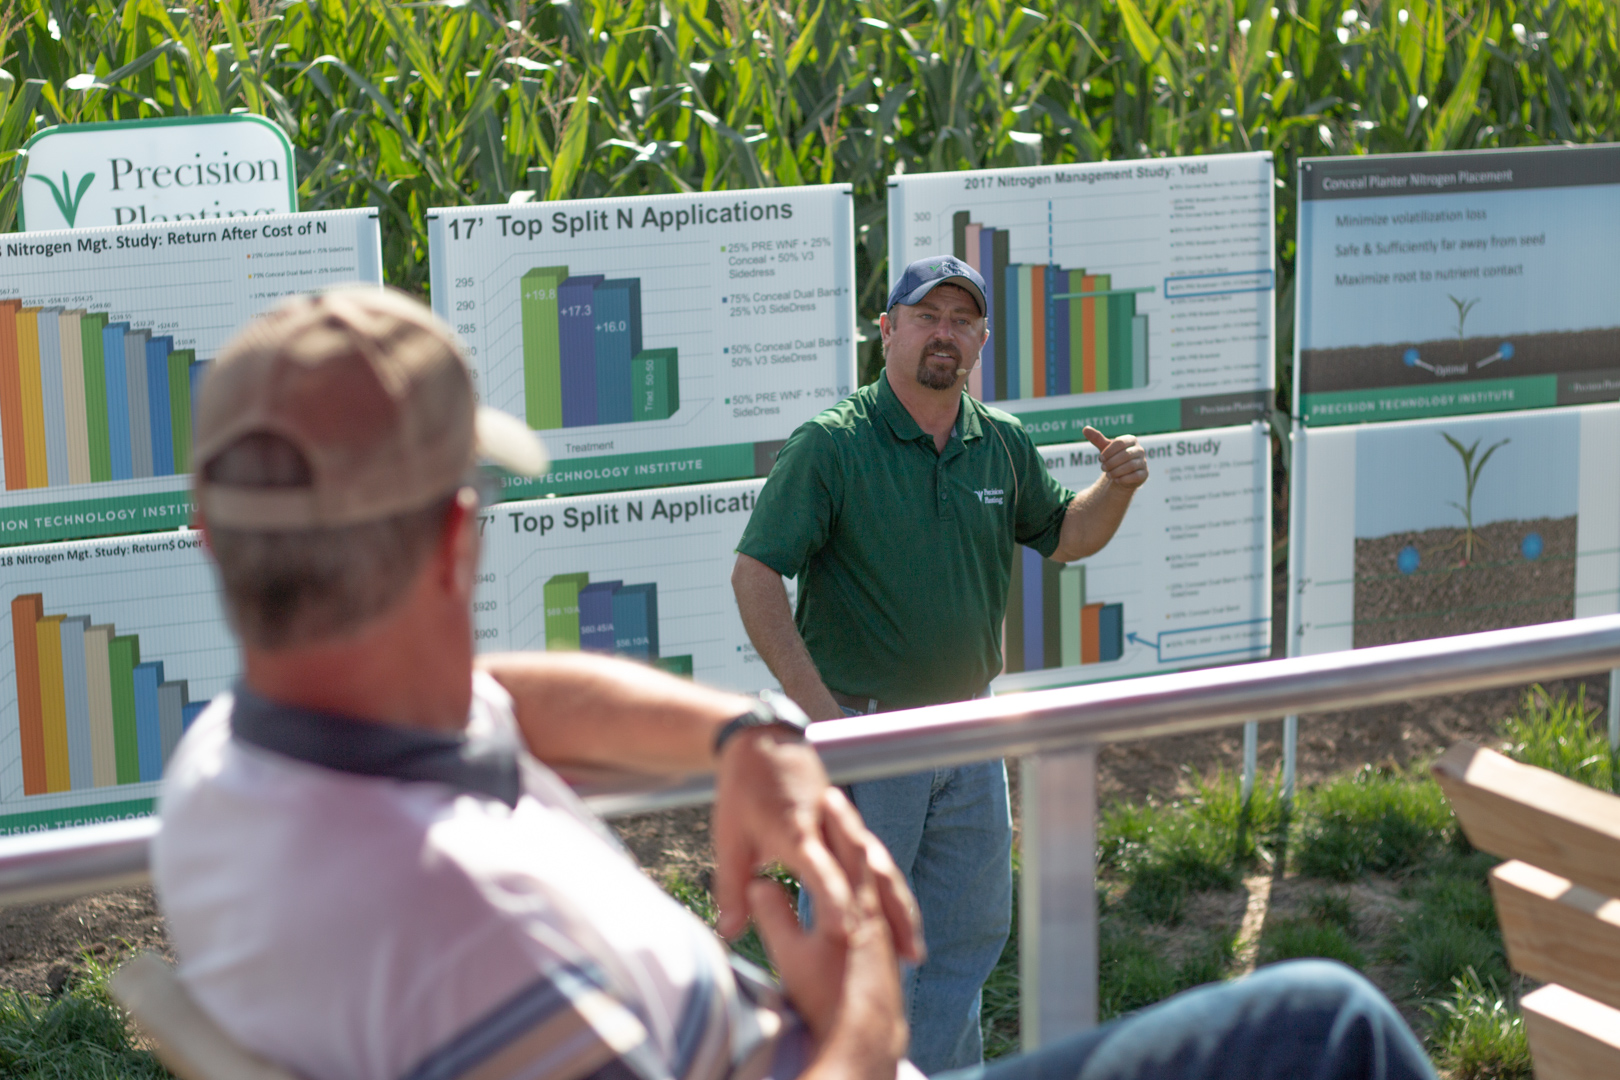 Farmers dive deeper into agronomy teachings during a session taught by an agriculture industry expert.